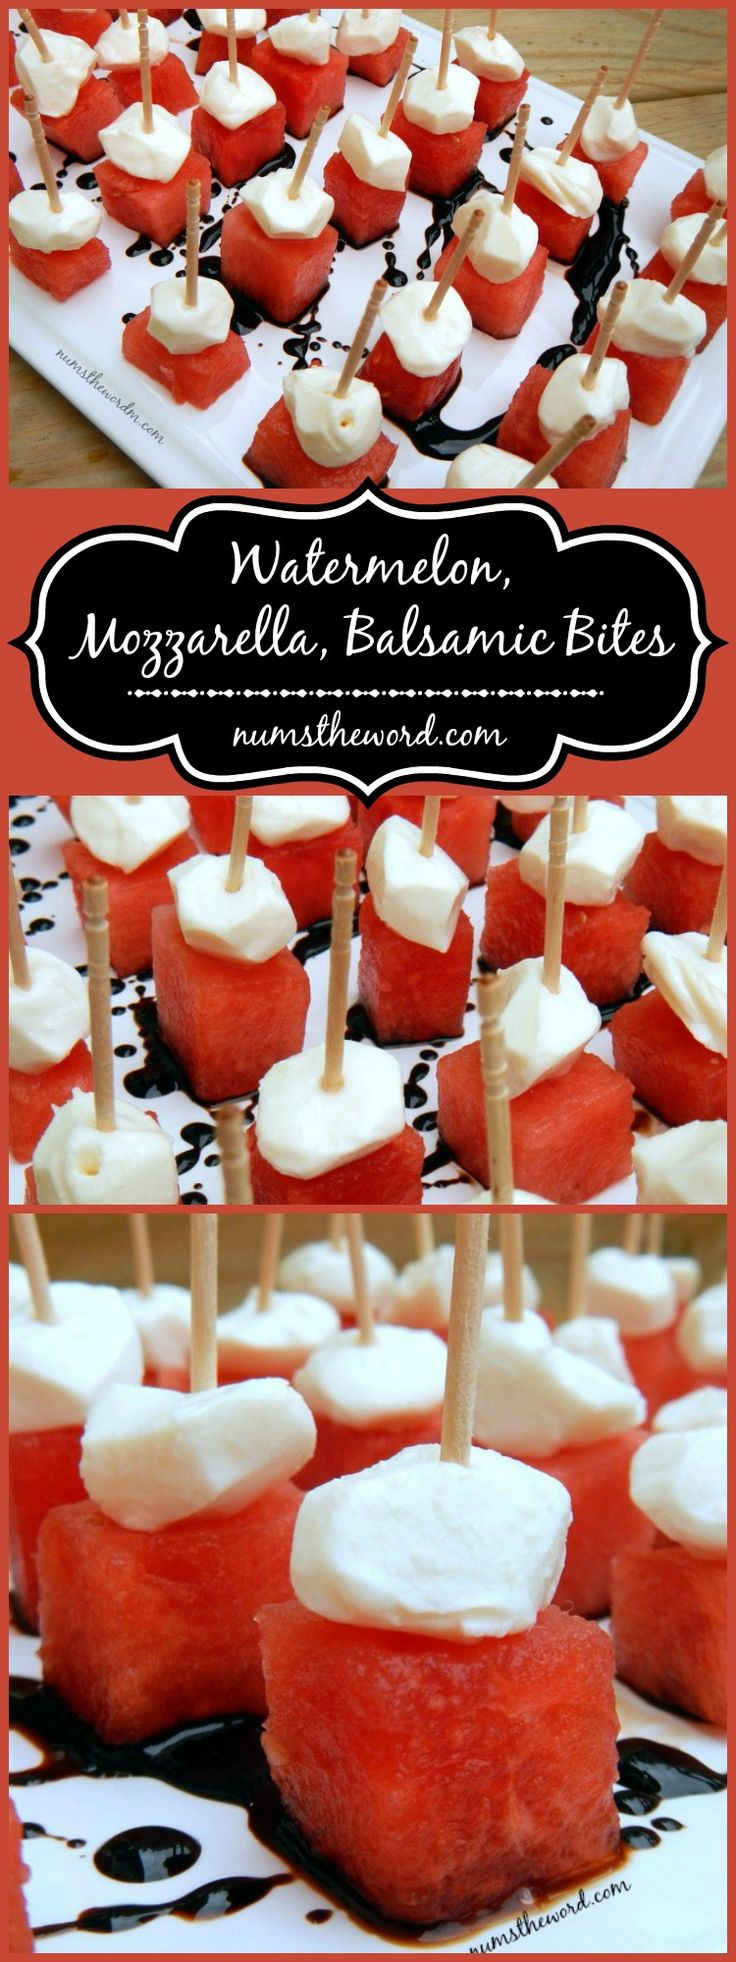 Looking for a simple, refreshing appetizer for your next party? Try this one! It only takes minutes to put together and tastes fantastic!